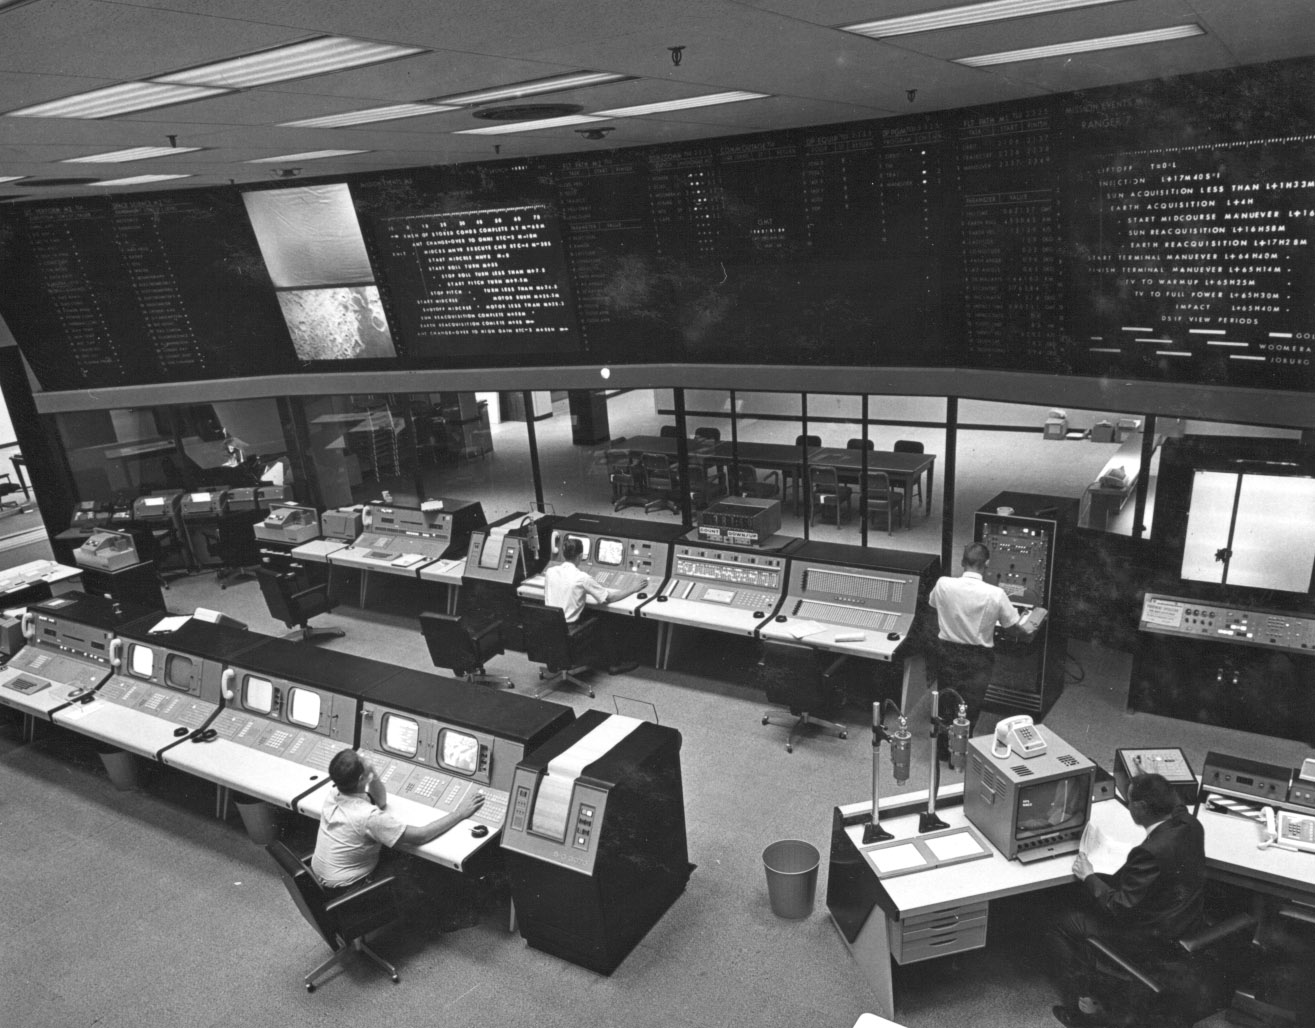 Dedicated in May 1964, the new Space Flight Operations Facility used state-of-the-art equipment for mission operations and communications with JPL's unmanned spacecraft. One of the first missions to use the facility was Ranger 7.